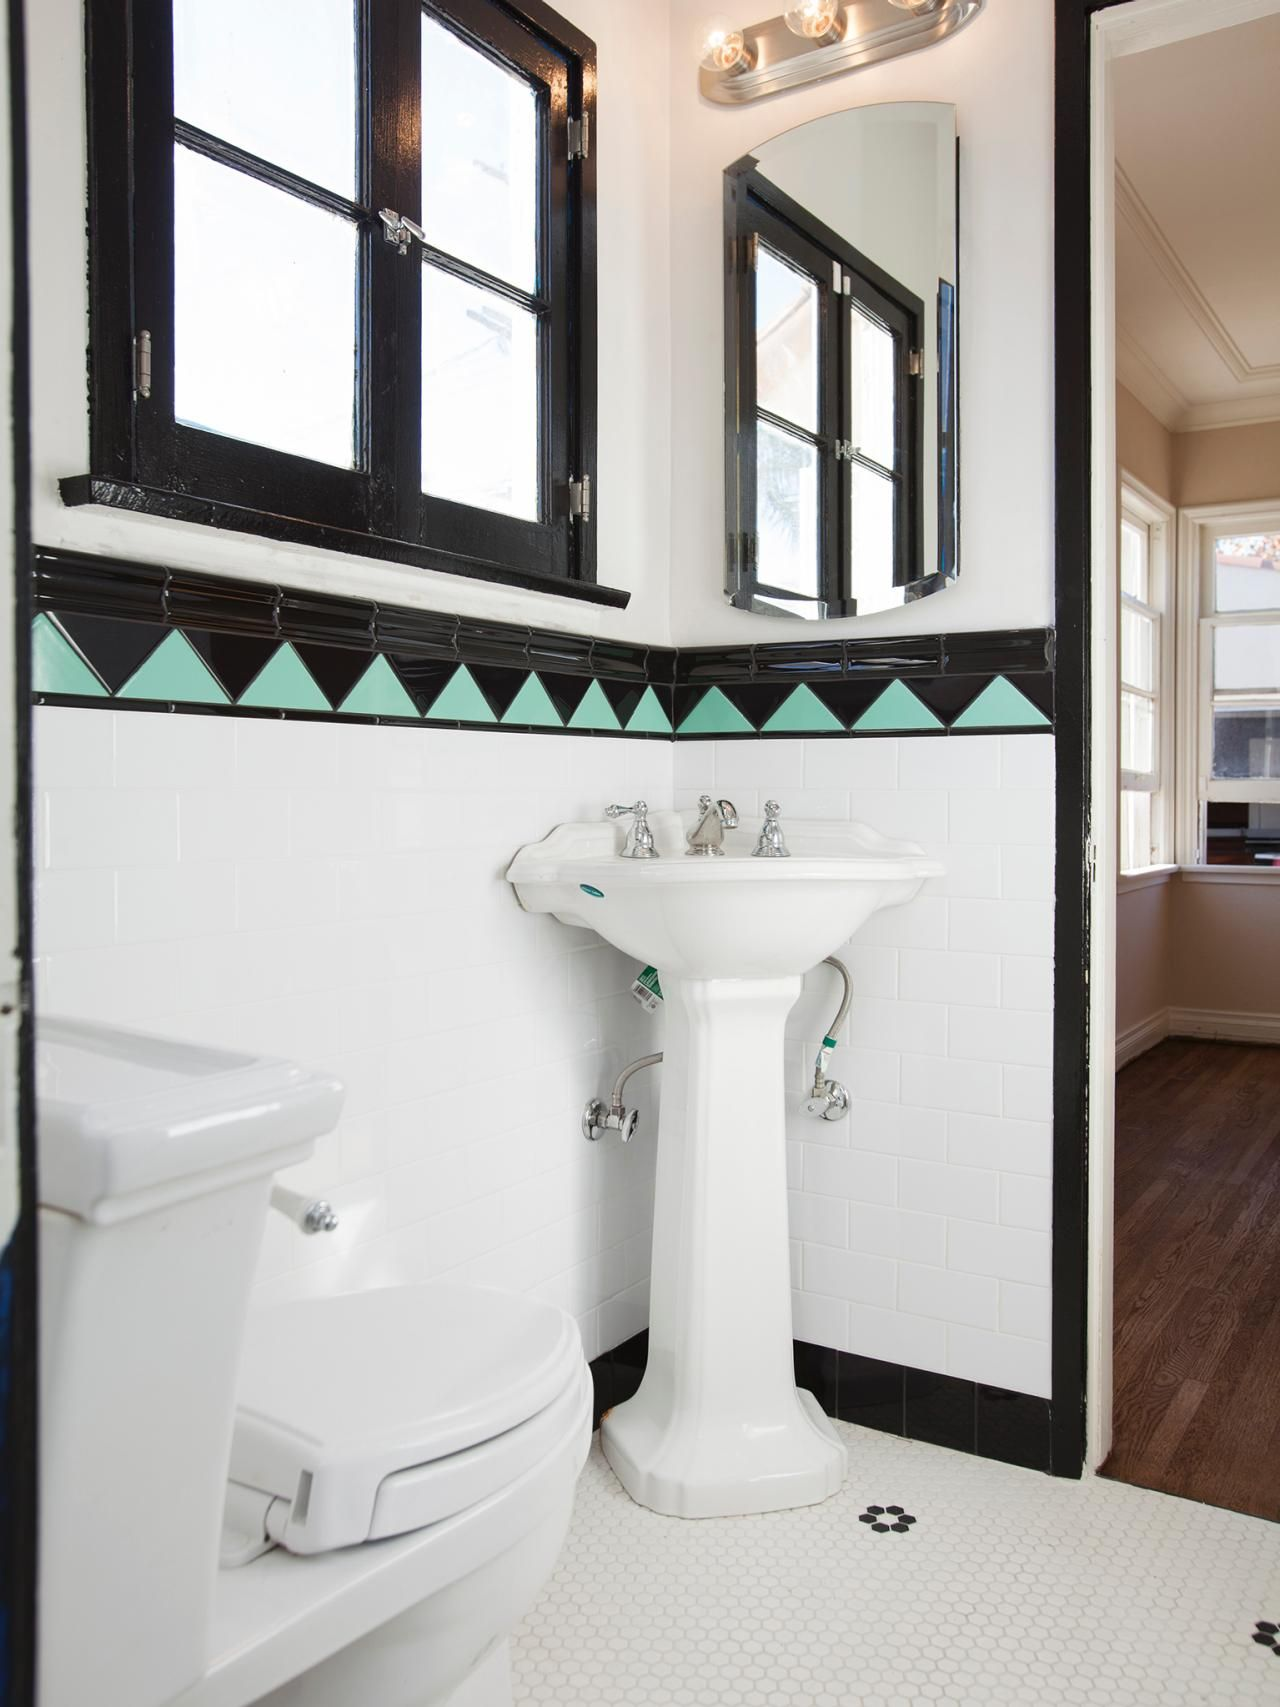 Charming 25 Amazing Room Makeovers From HGTVu0027s House Hunters Renovation. Art Deco  BathroomBathroom ...